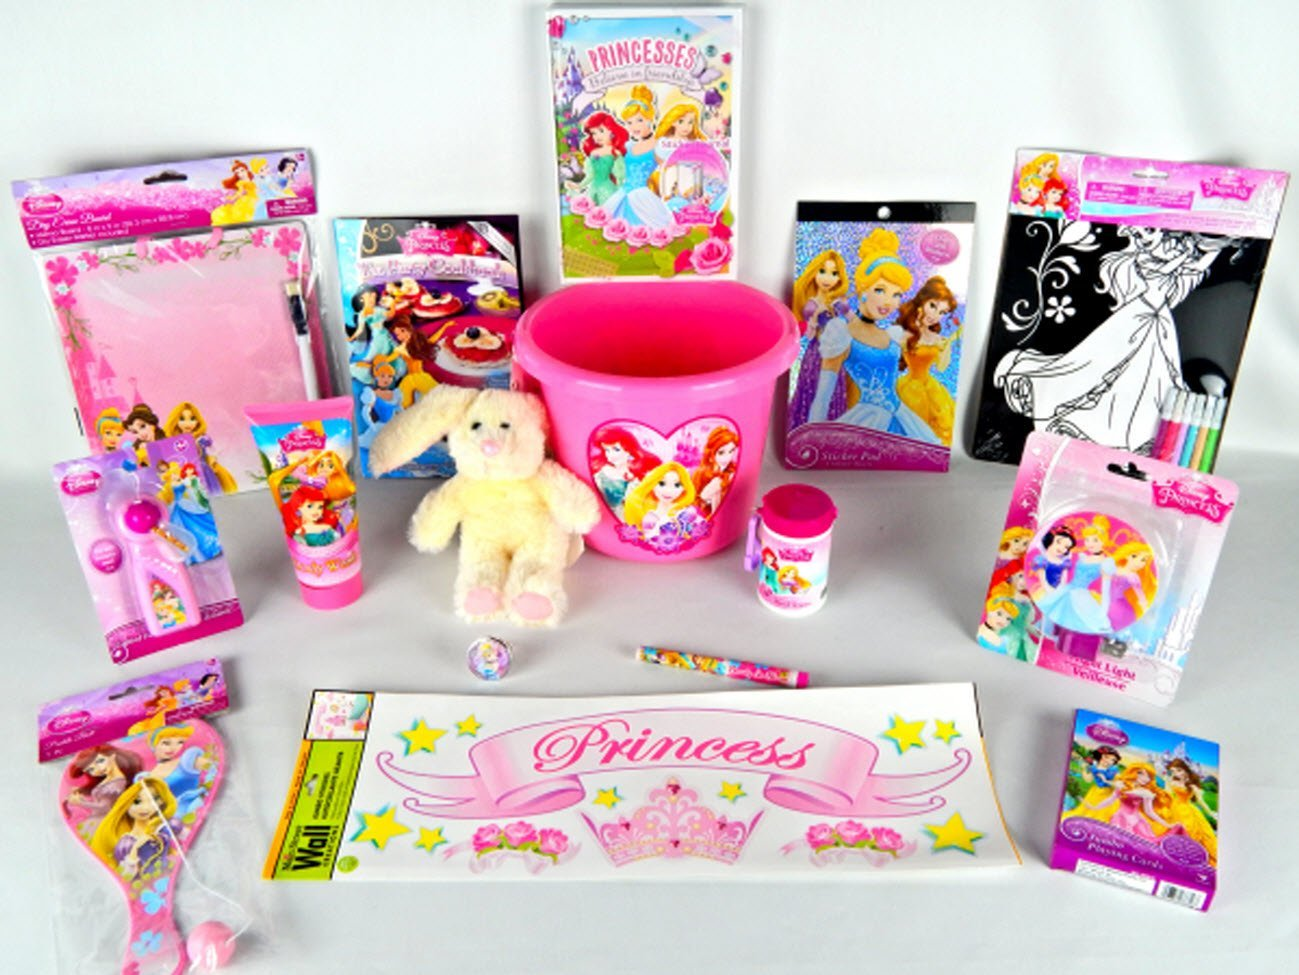 17 piece Disney Princess Royal Party Learning Activity Gift Set Bundle Disney Princess